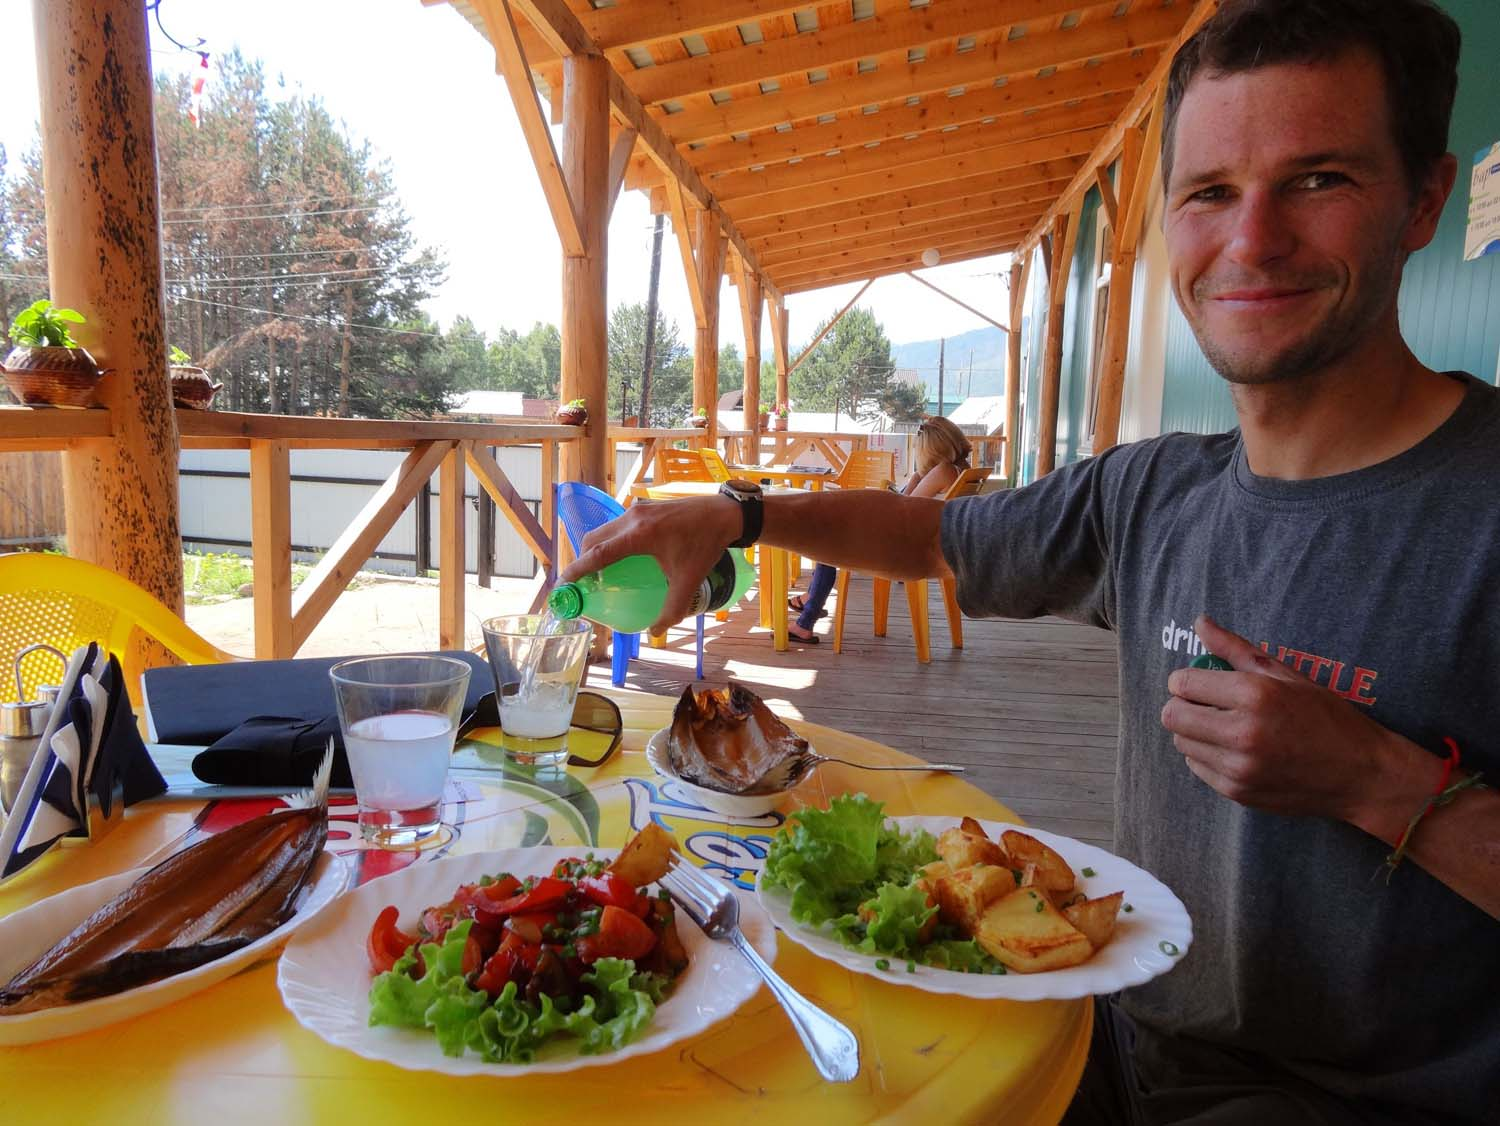 fantastic first Russian meal - smoked omul, potatoes and vegetables